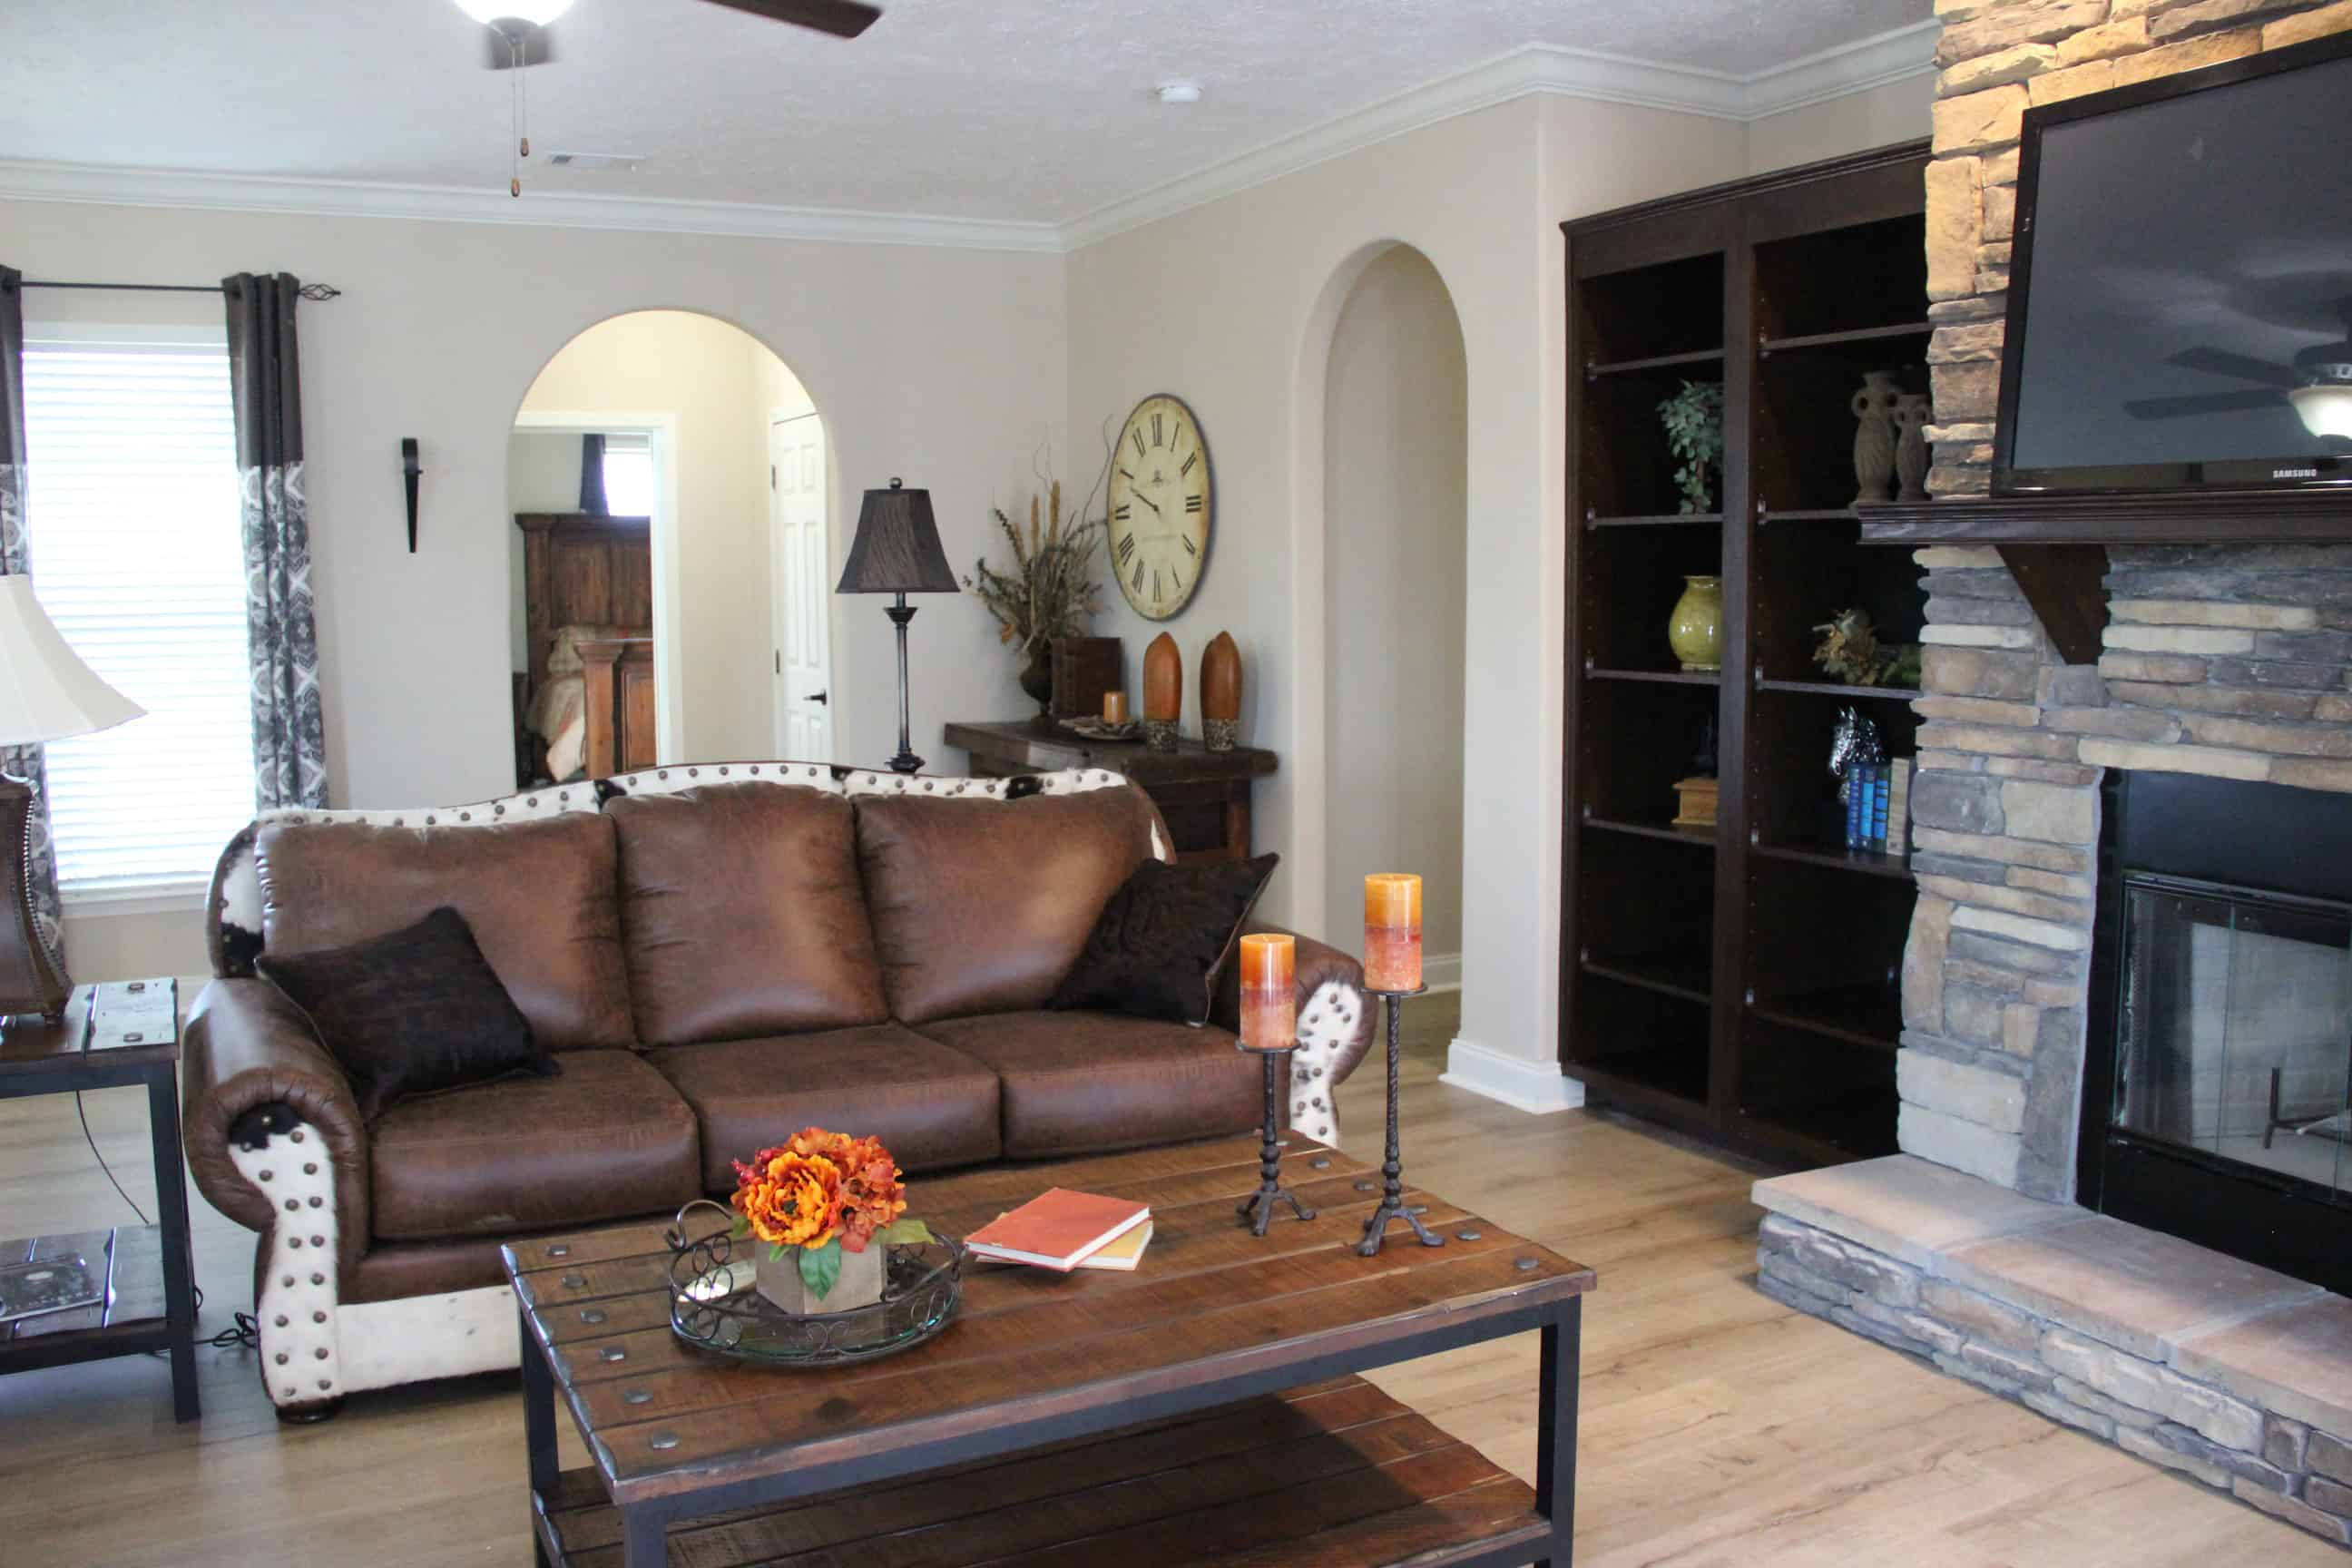 Living room details from house model Brian Ritz